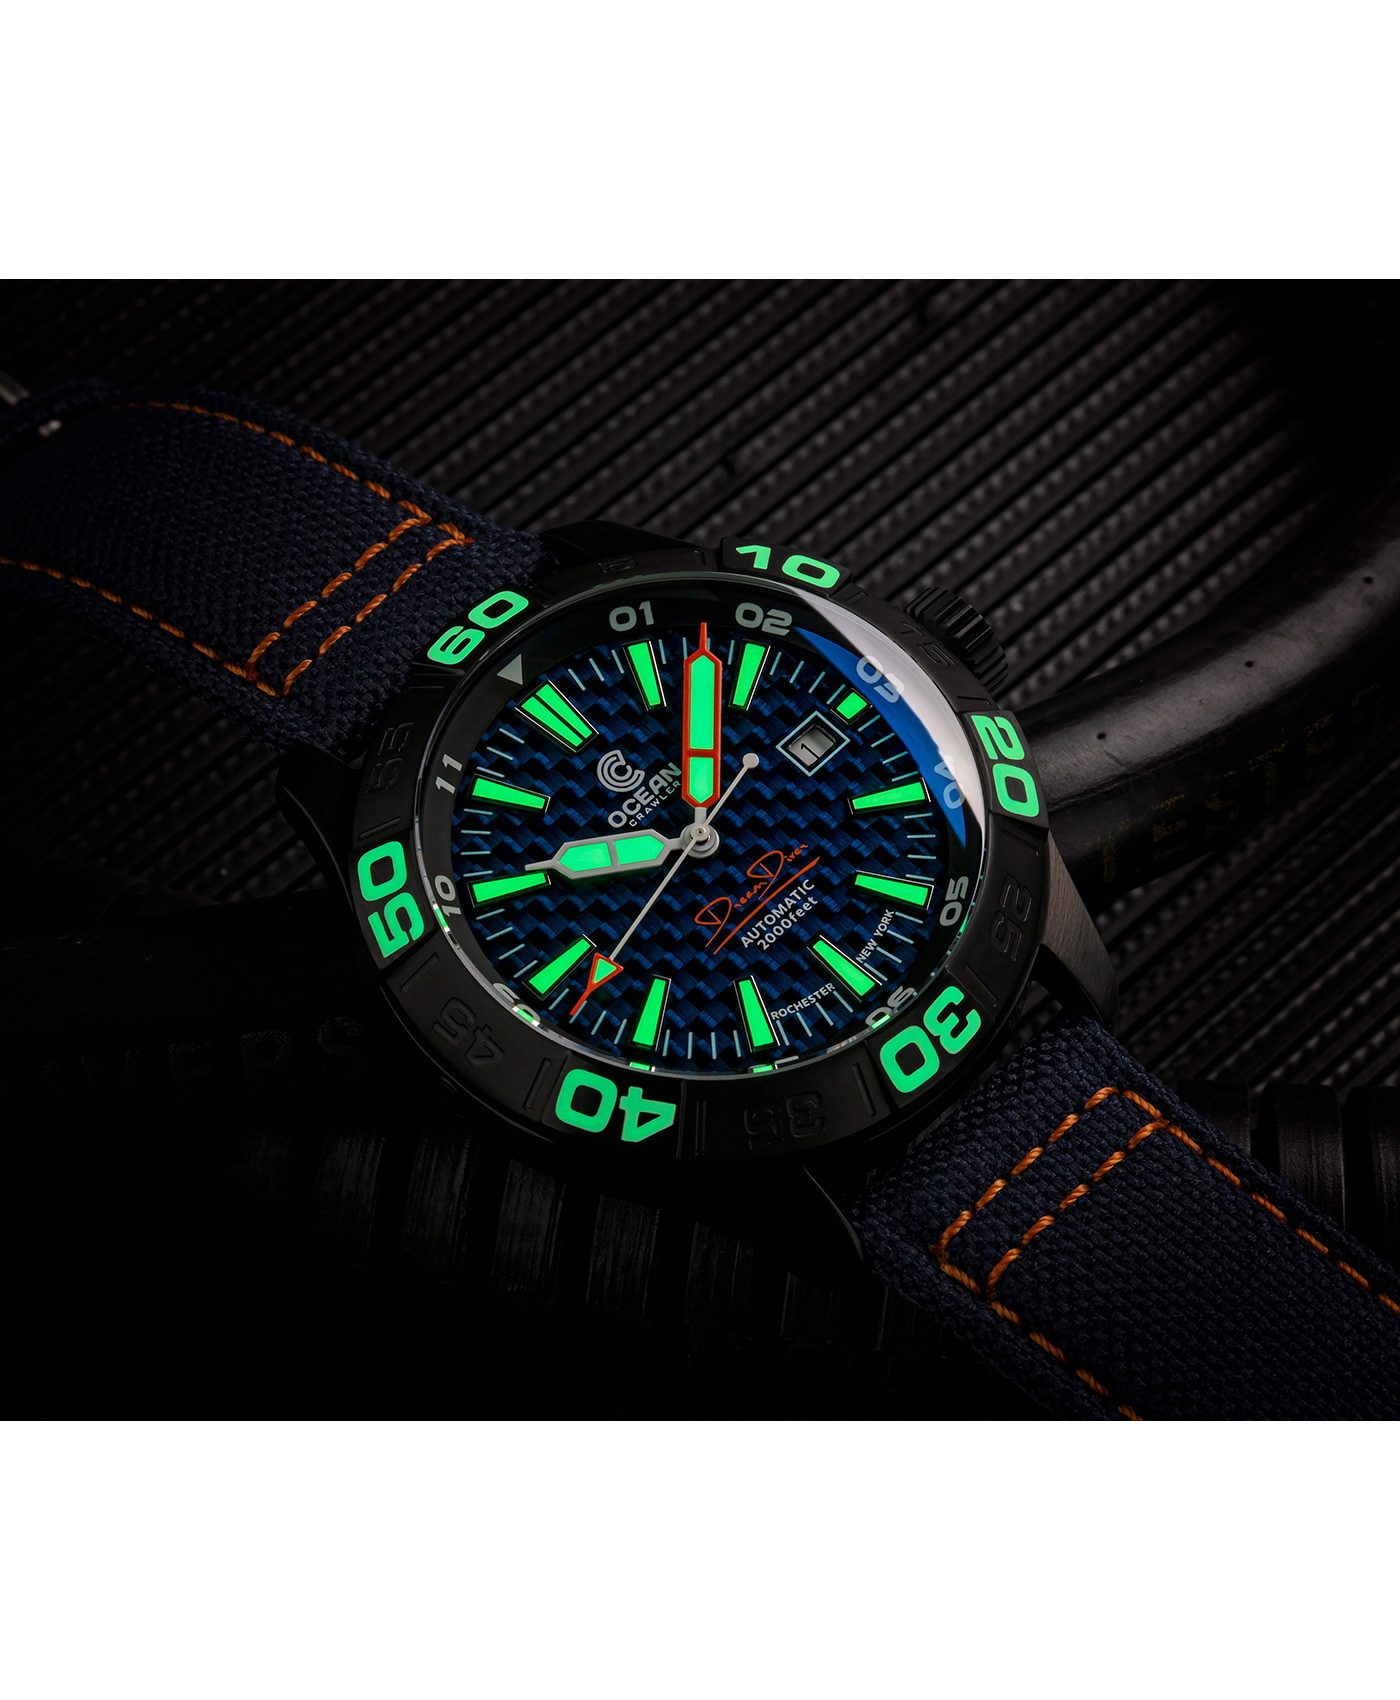 WB Ocean Crawler Dream Diver Blue Carbon Fiber DLC lume